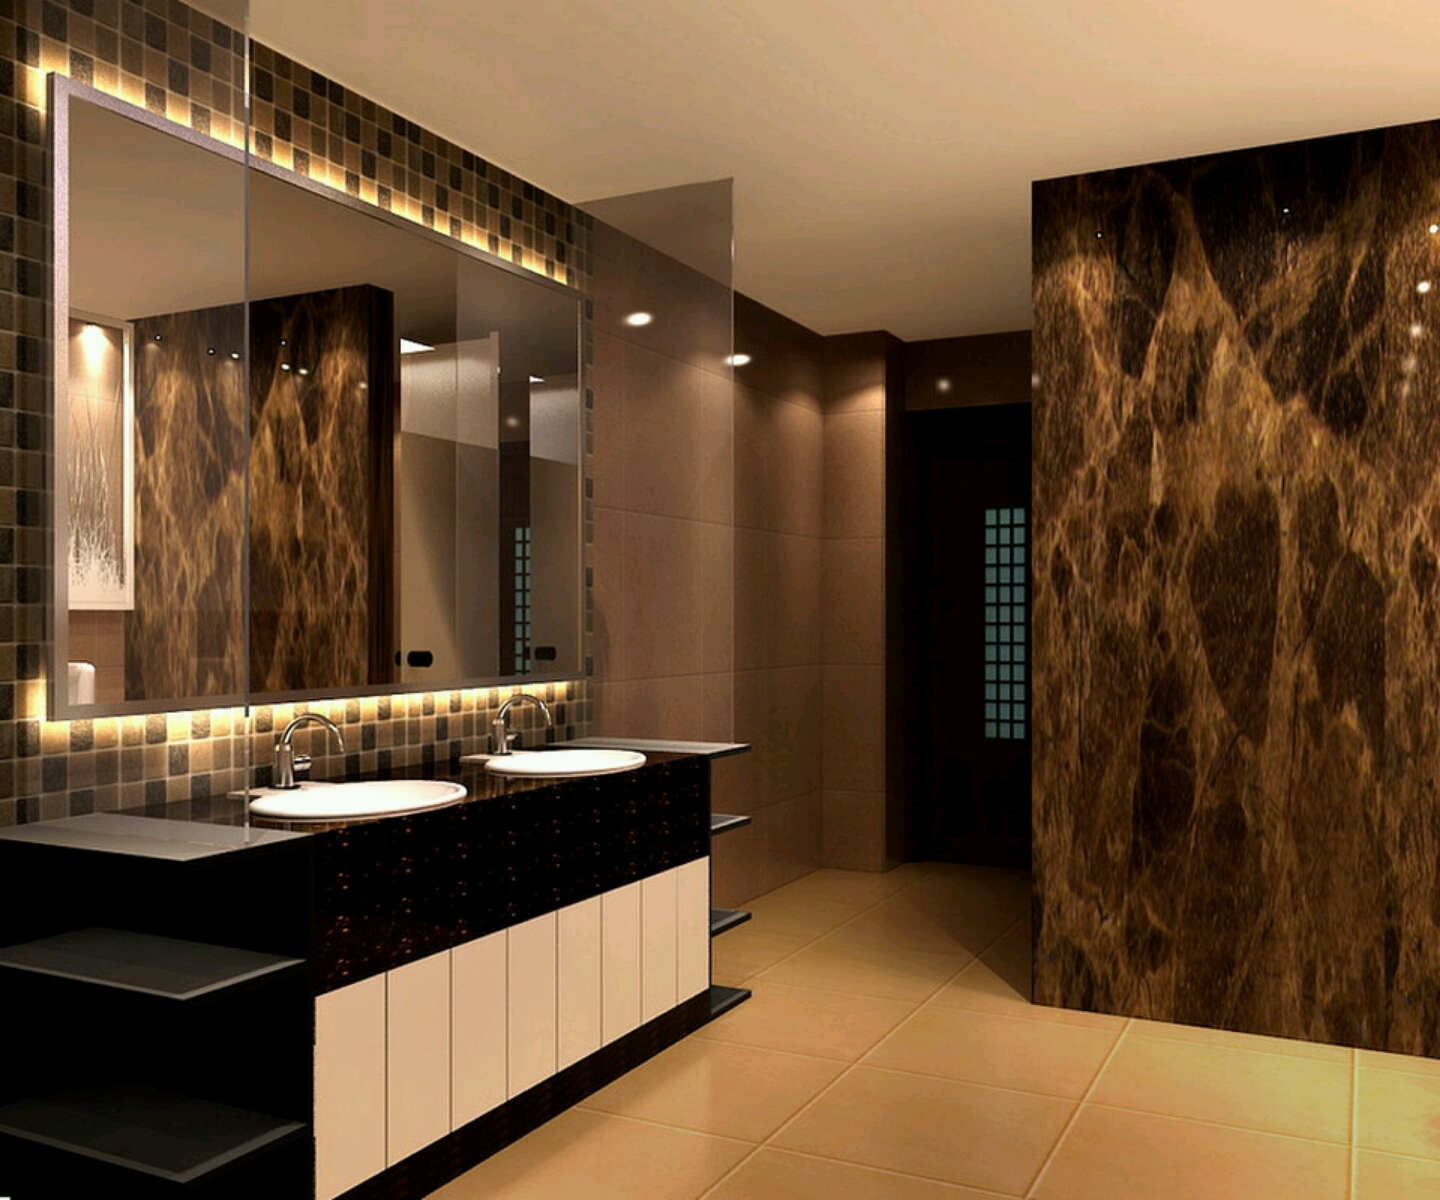 New home designs latest modern homes modern bathrooms for Bathroom design ideas modern